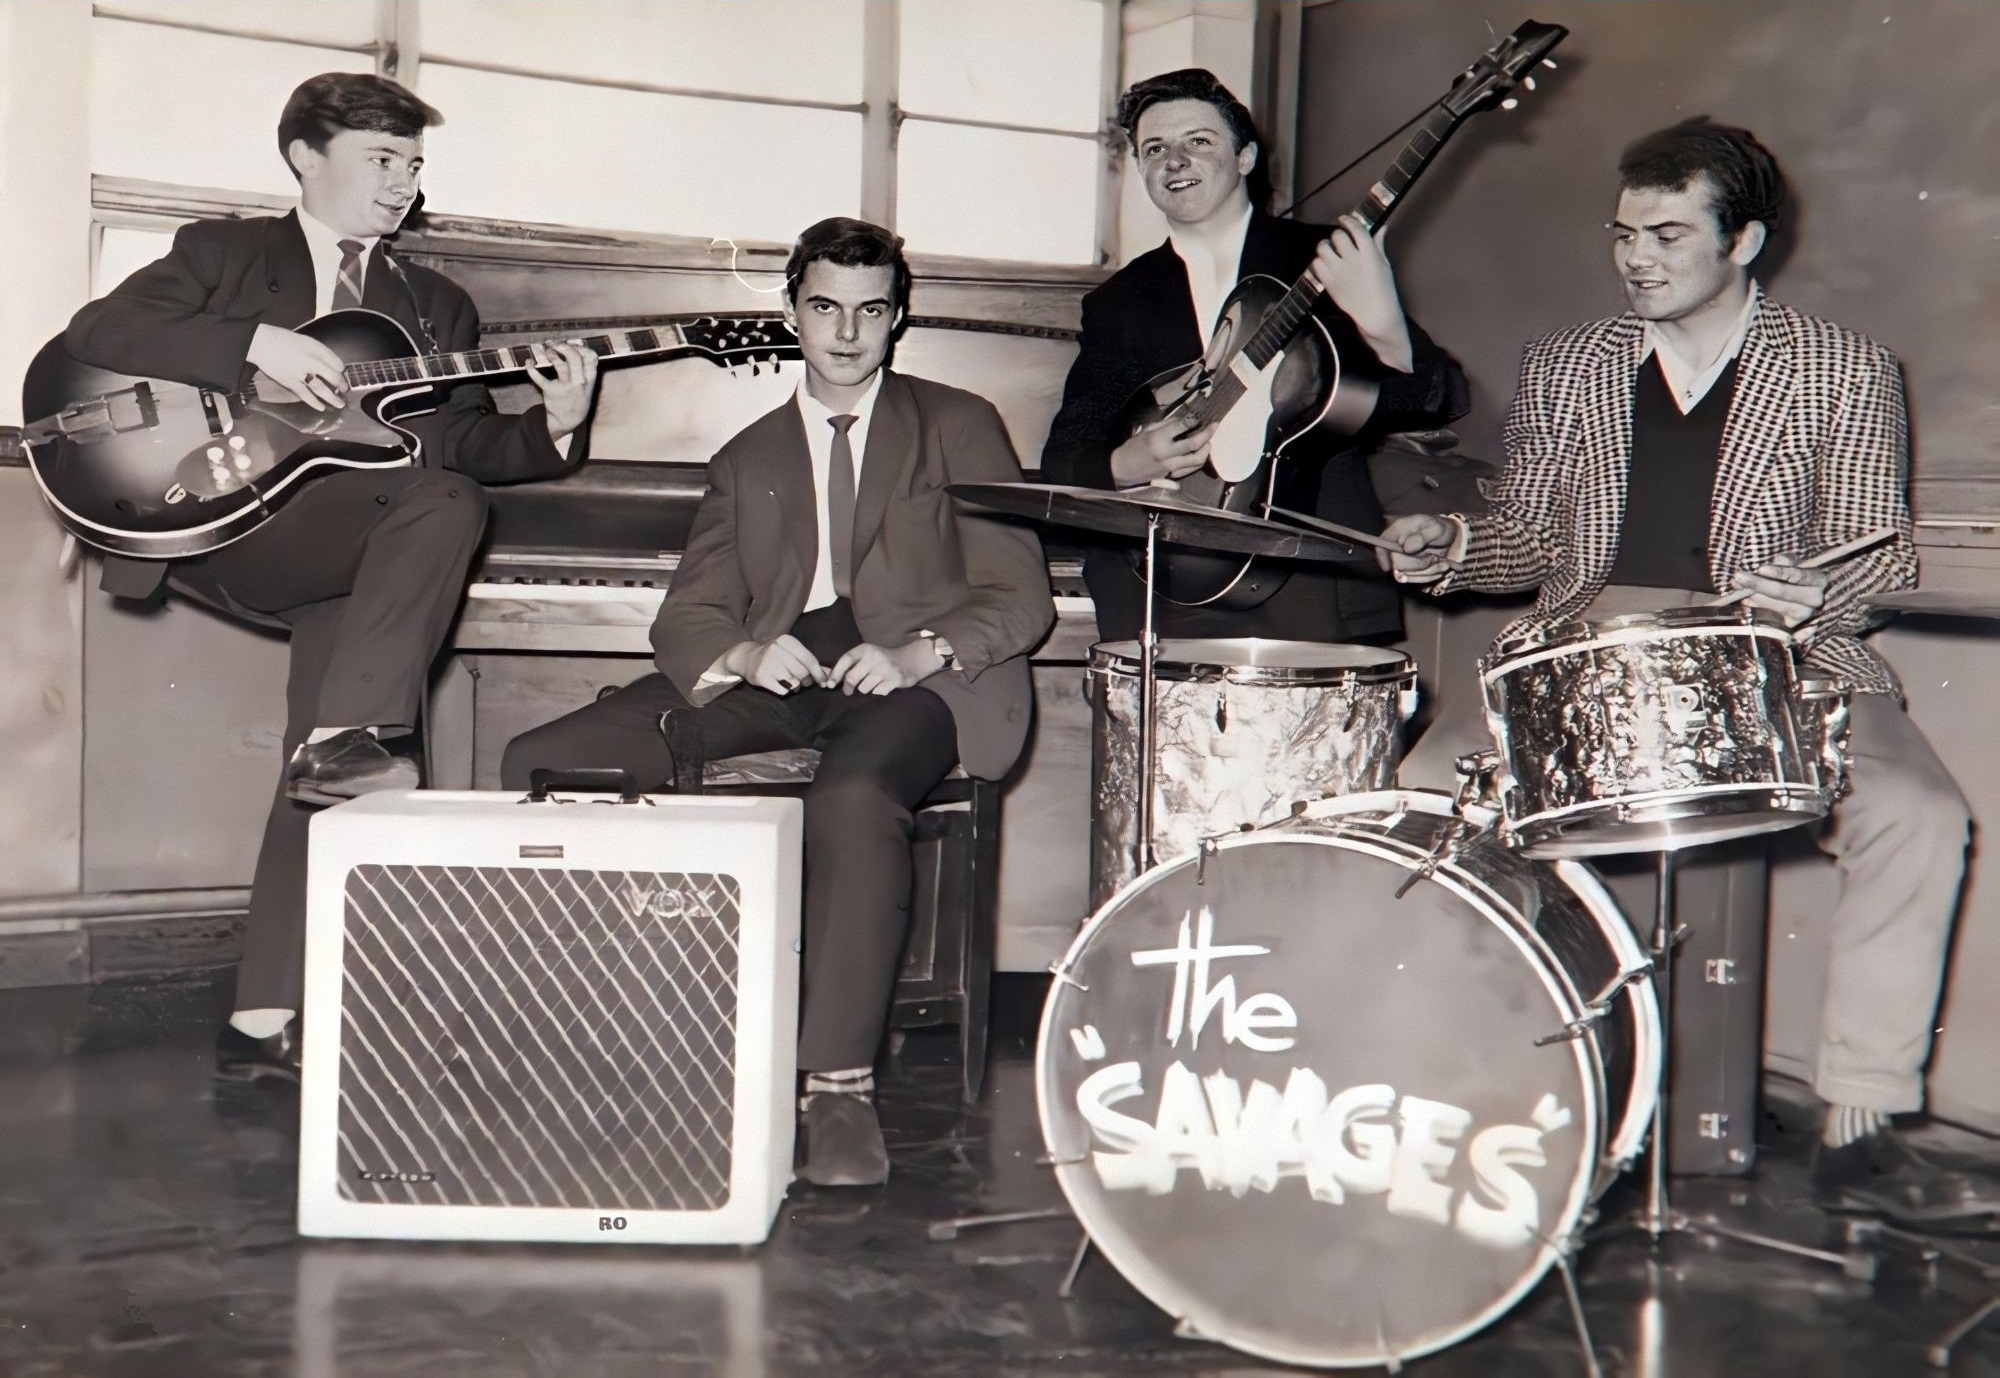 Nicky Hopkins with the Savages in 1960